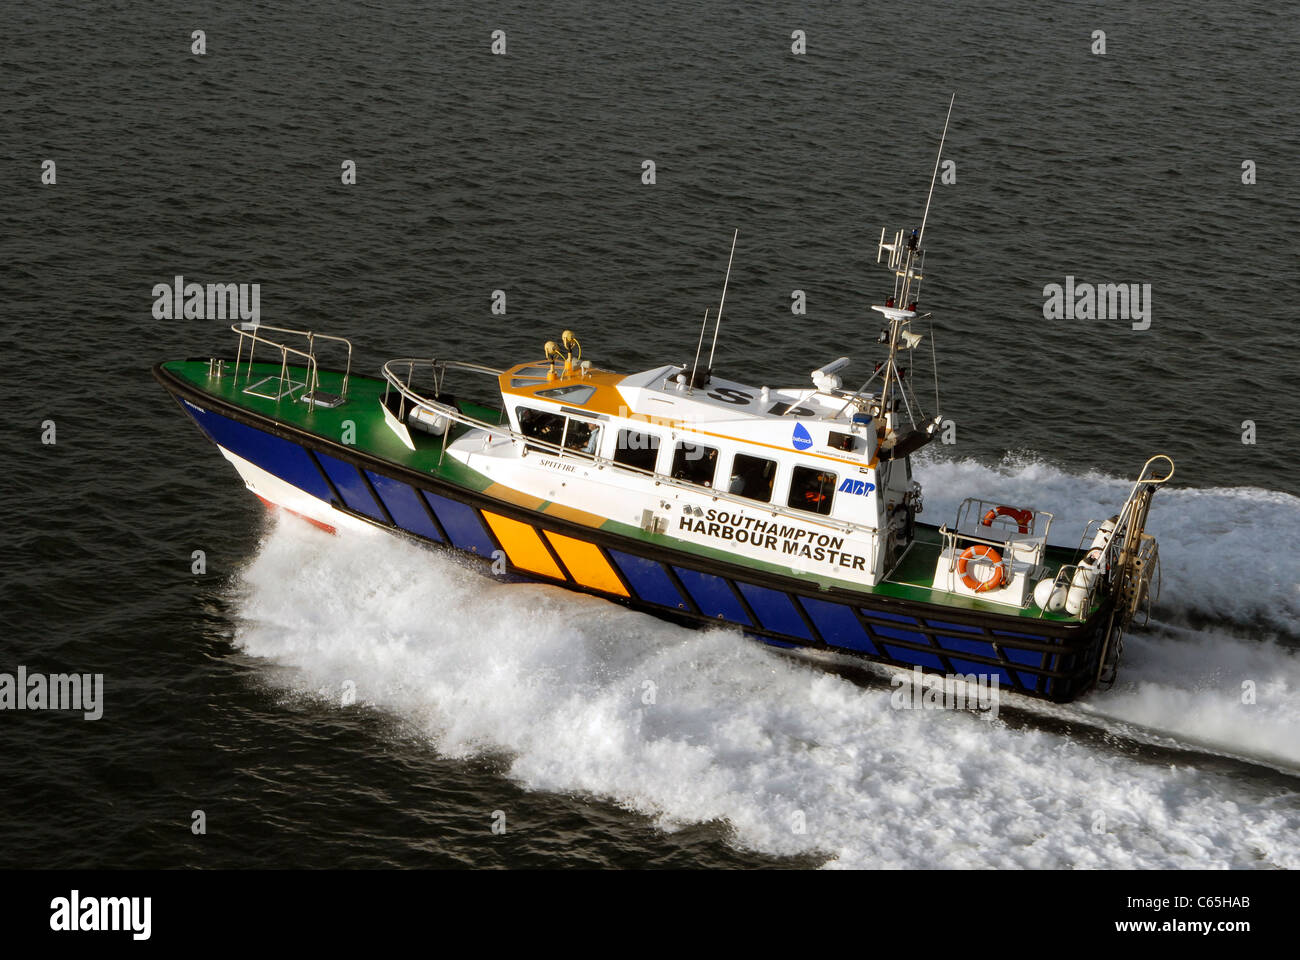 Southampton Harbour Master patrol launch at speed - aerial view - Stock Image